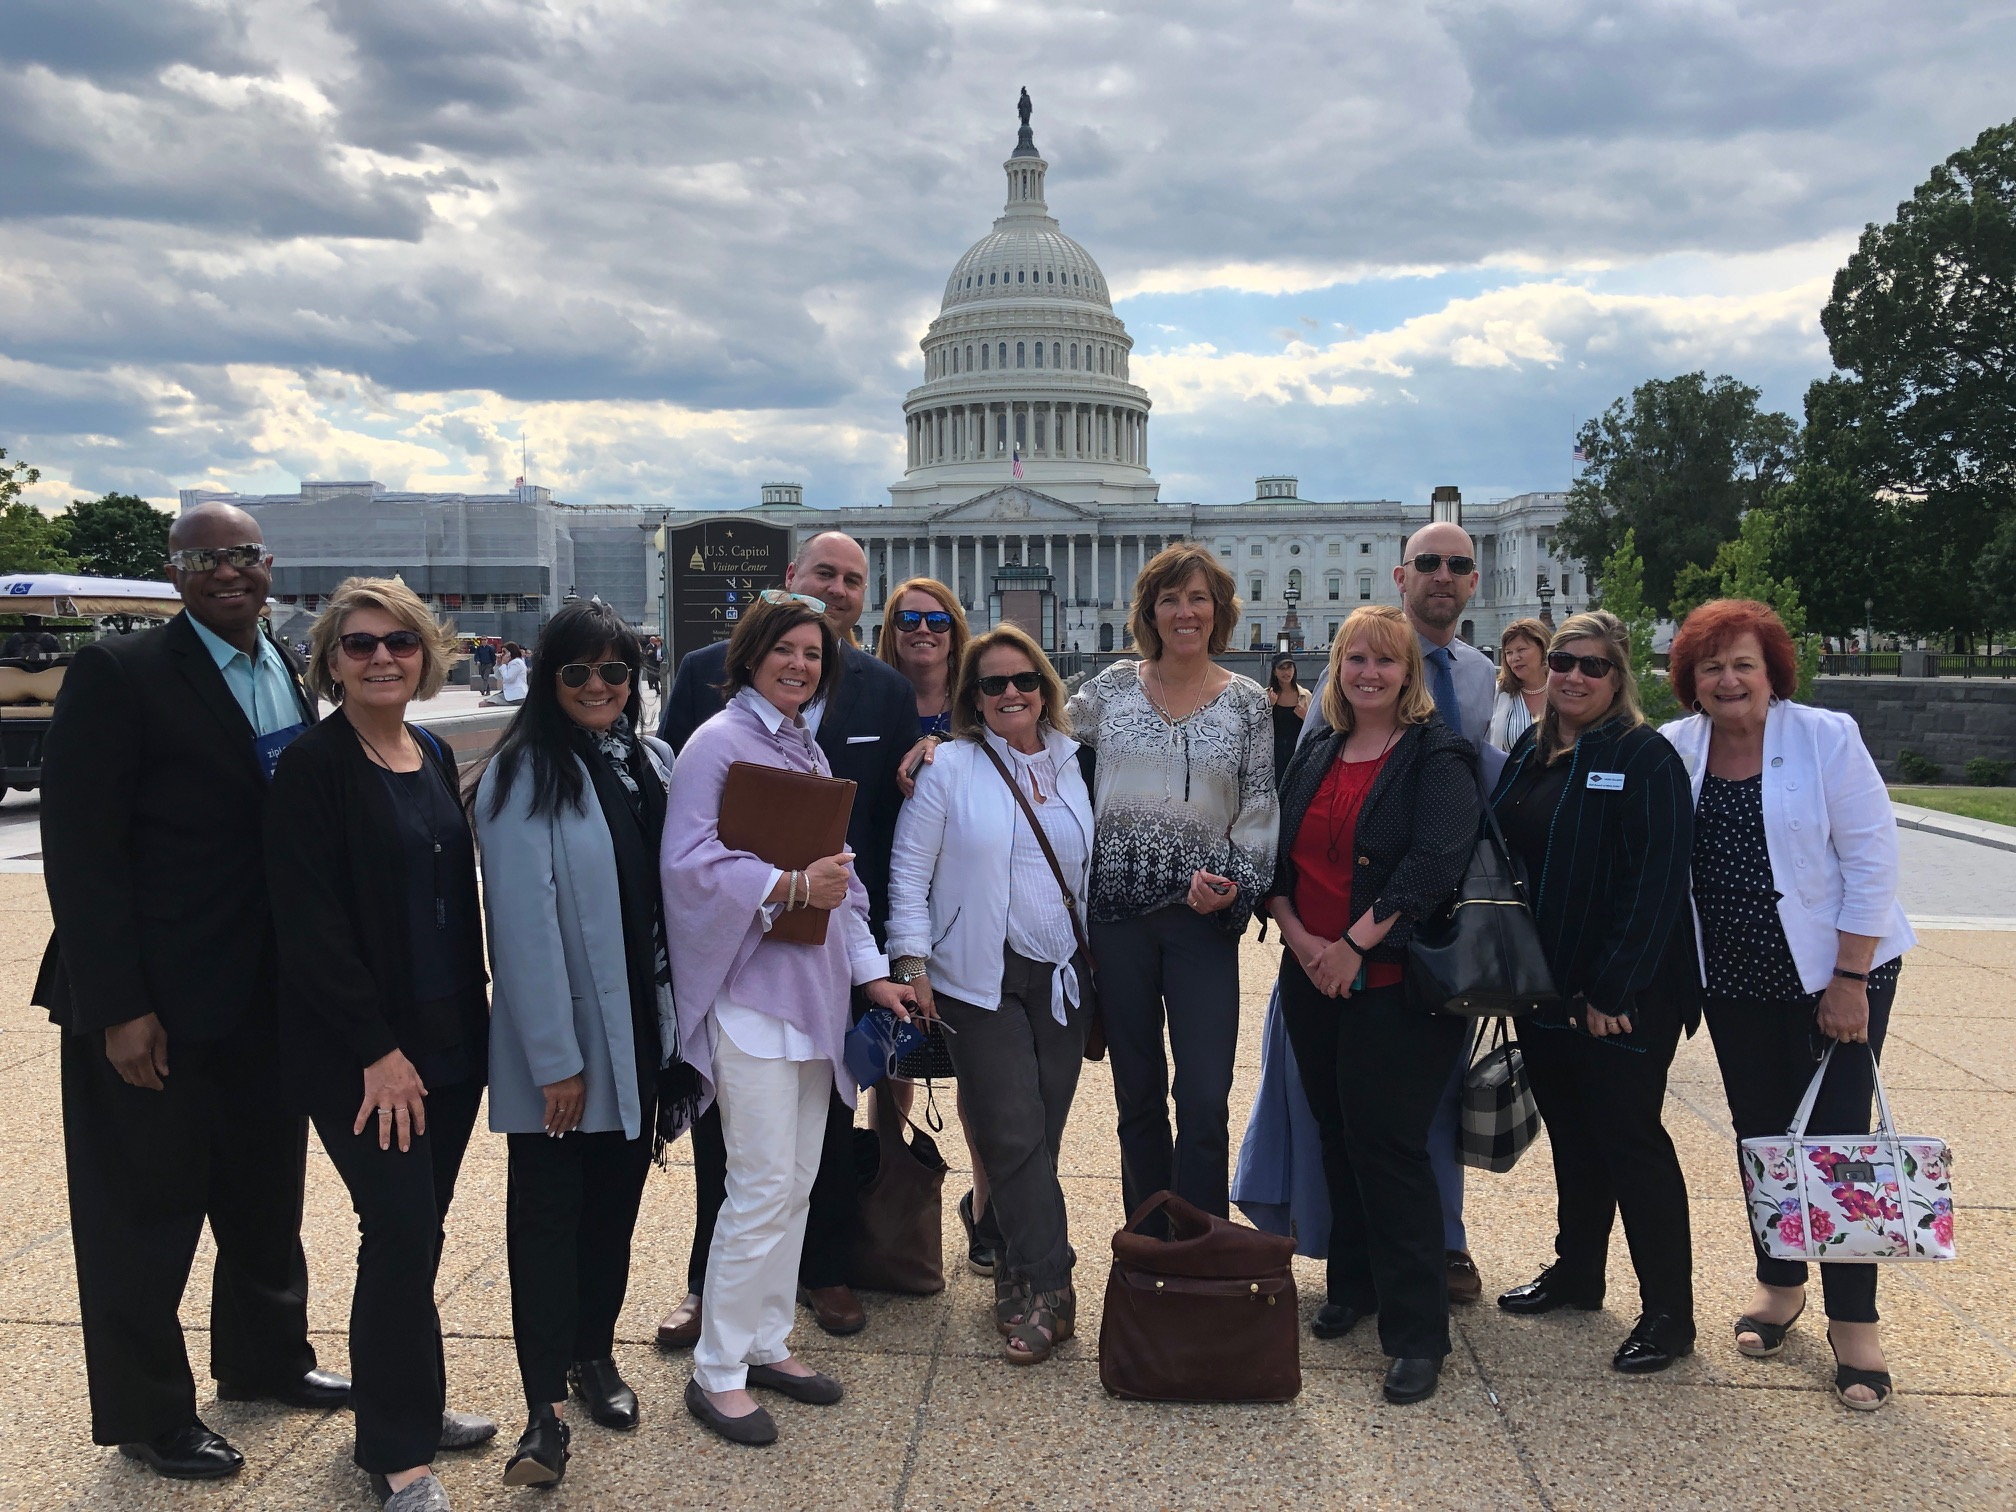 REALTORS gathered in front of the Capitol for NAR Midyear Meetings